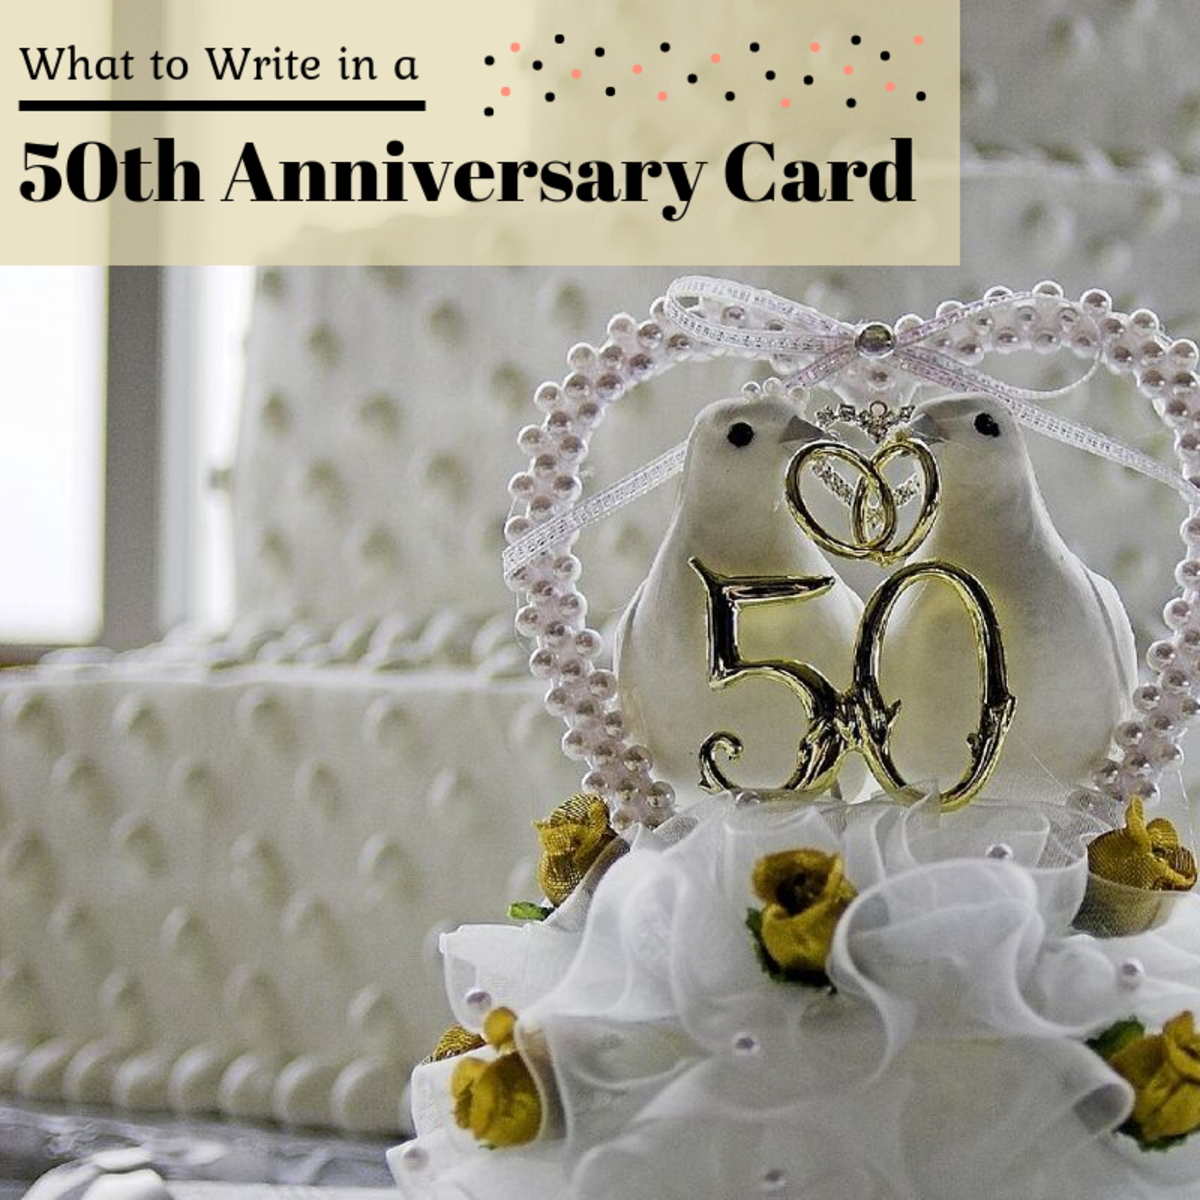 50 years of marriage is pretty darn impressive! Whether writing to your spouse or to the happy couple as a friend, make your message count!